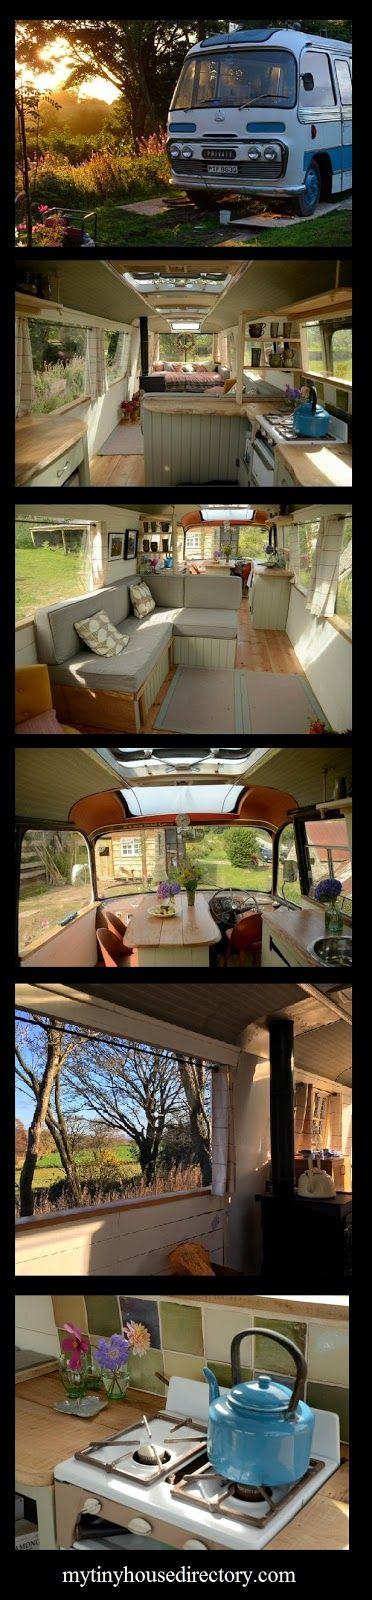 mytinyhousedirectory: Majestic Bus Tiny Home Vacation Rental